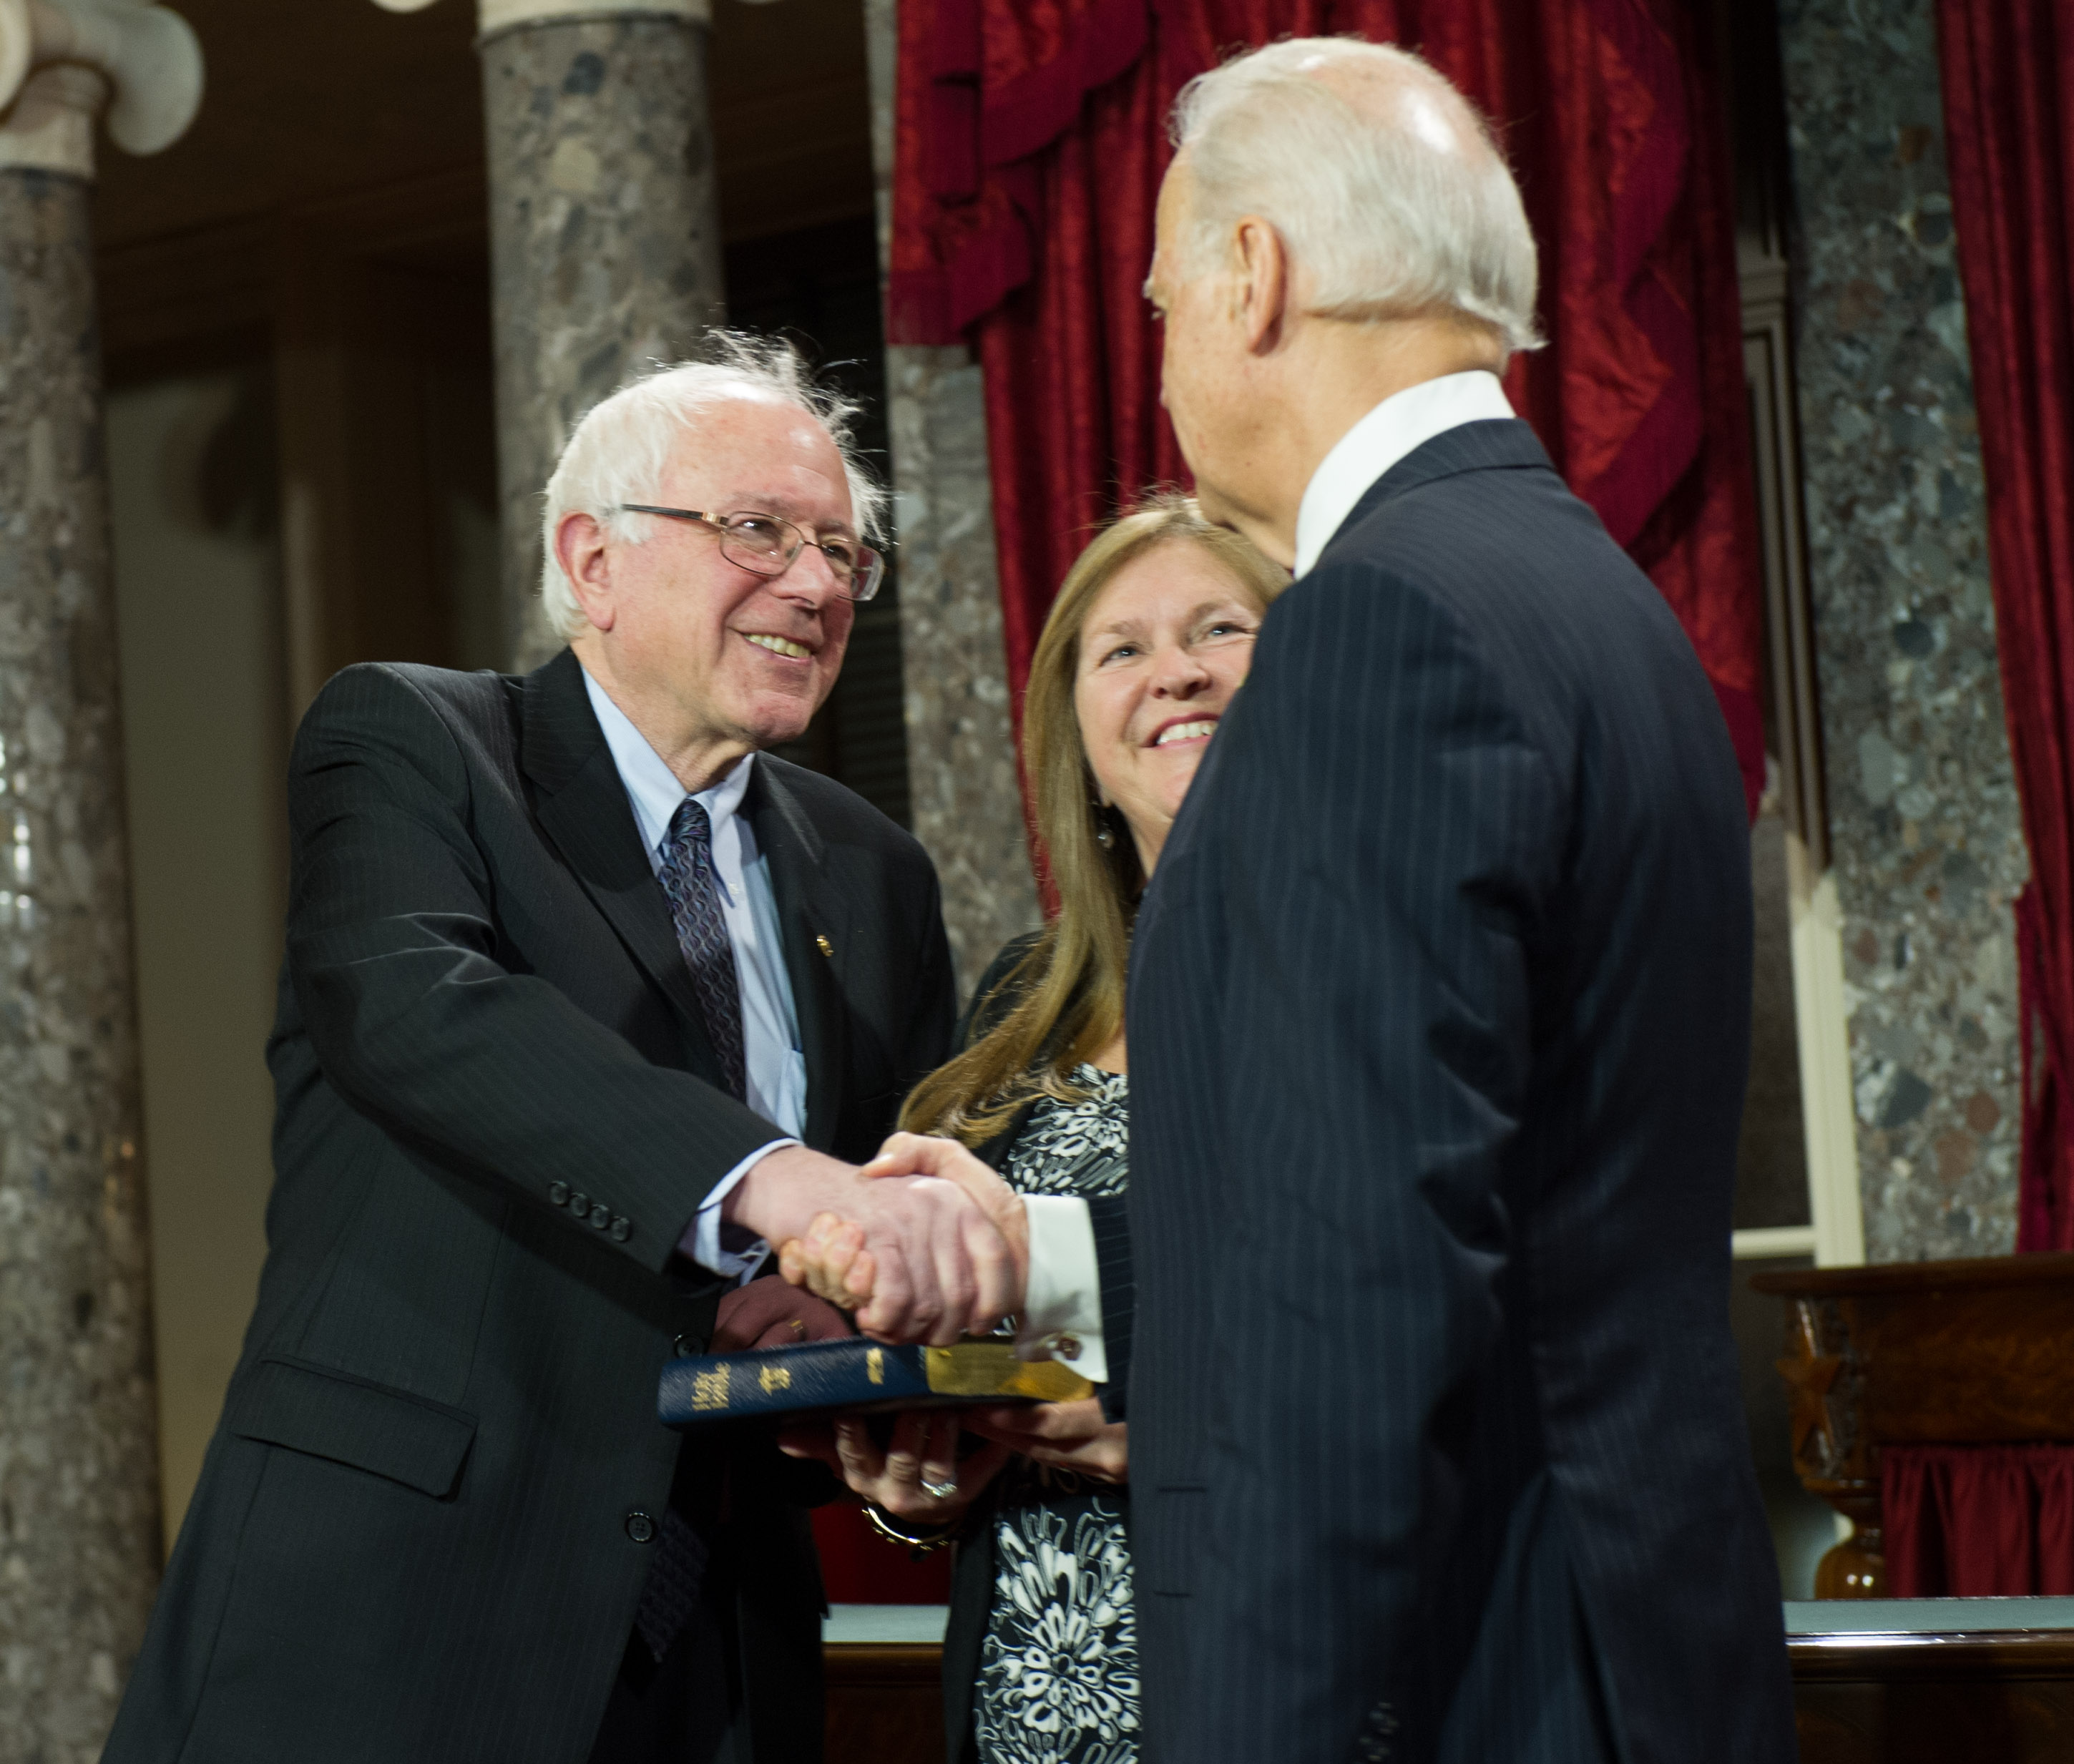 File:Bernie Sanders January 2013.jpg - Wikimedia Commons